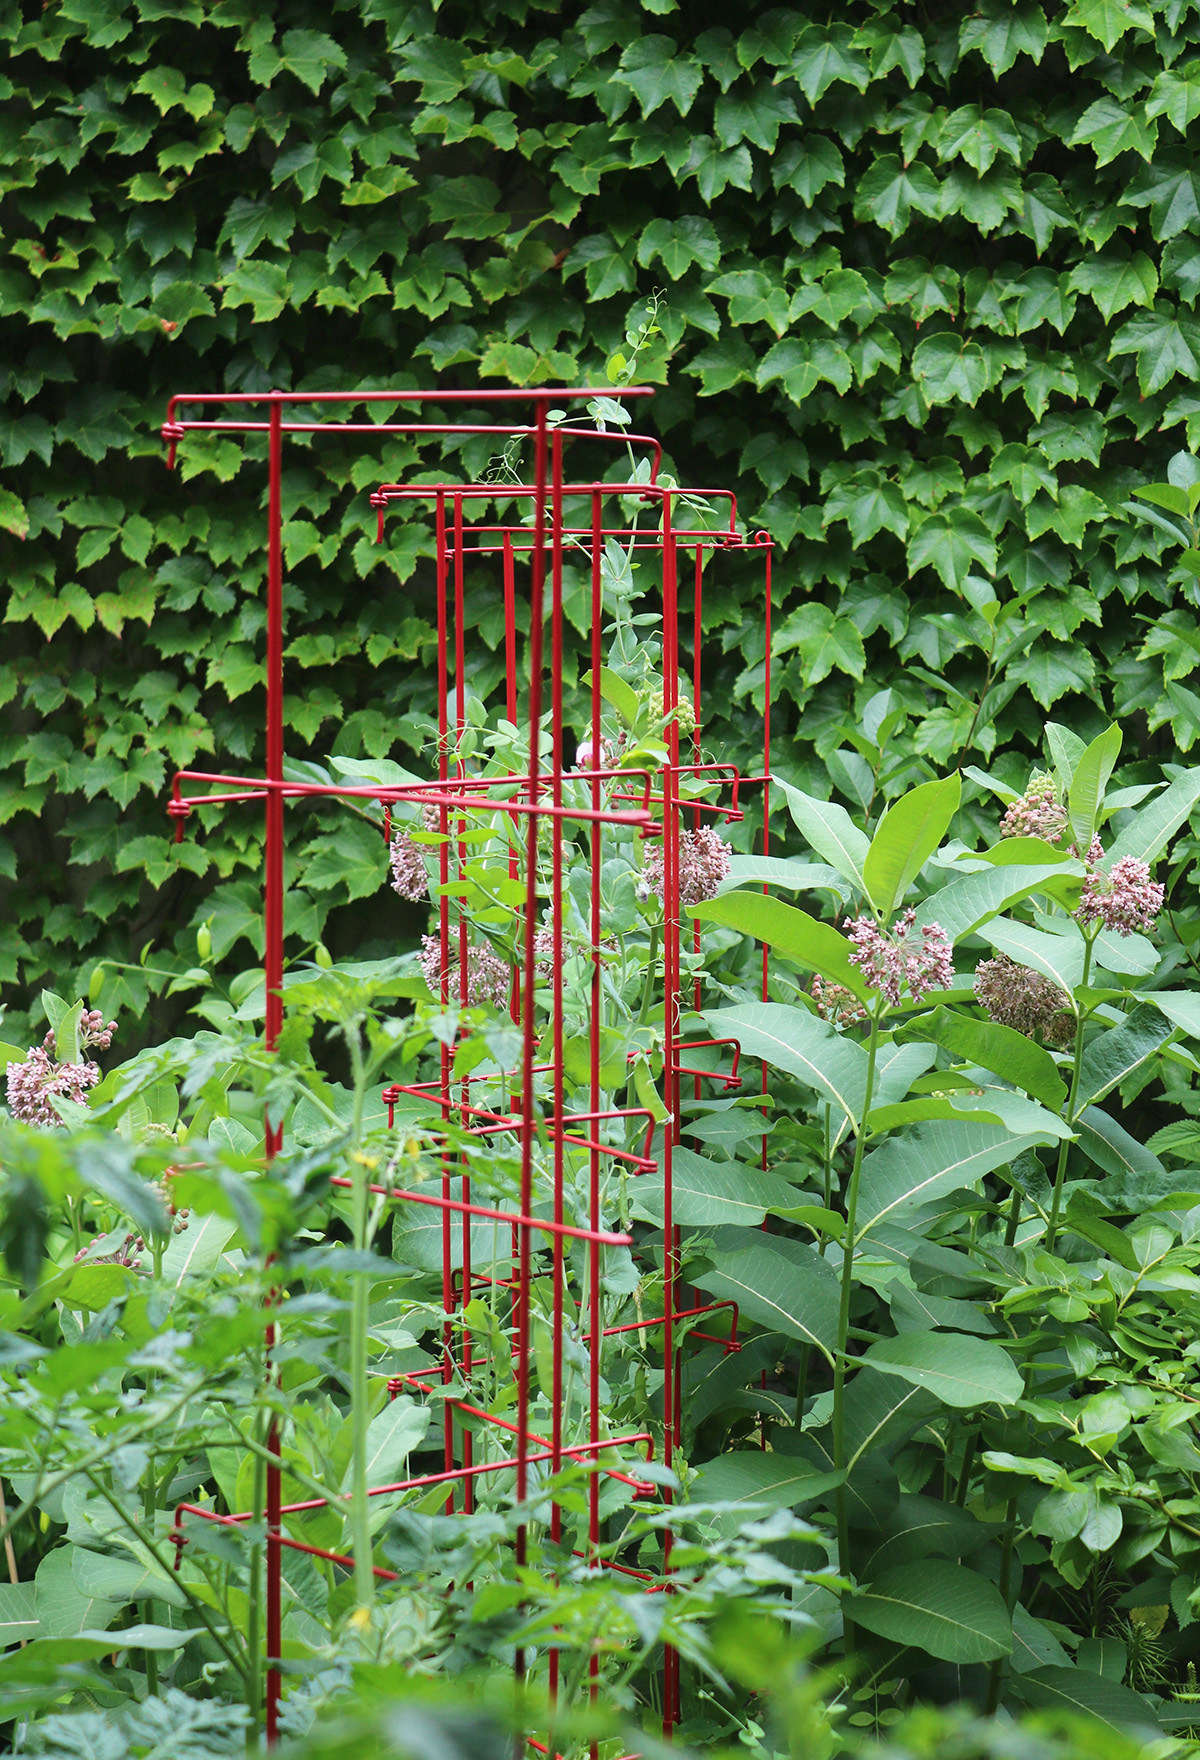 Because milkweed can grow very tall I planted peas nearby so that the legumes and the milkweed could share an expandable pea trellis for support. The peas also fix nitrogen, cutting down on the need for additional fertilizer. An Expandable Pea Trellis is $48.89 from Gardener&#8